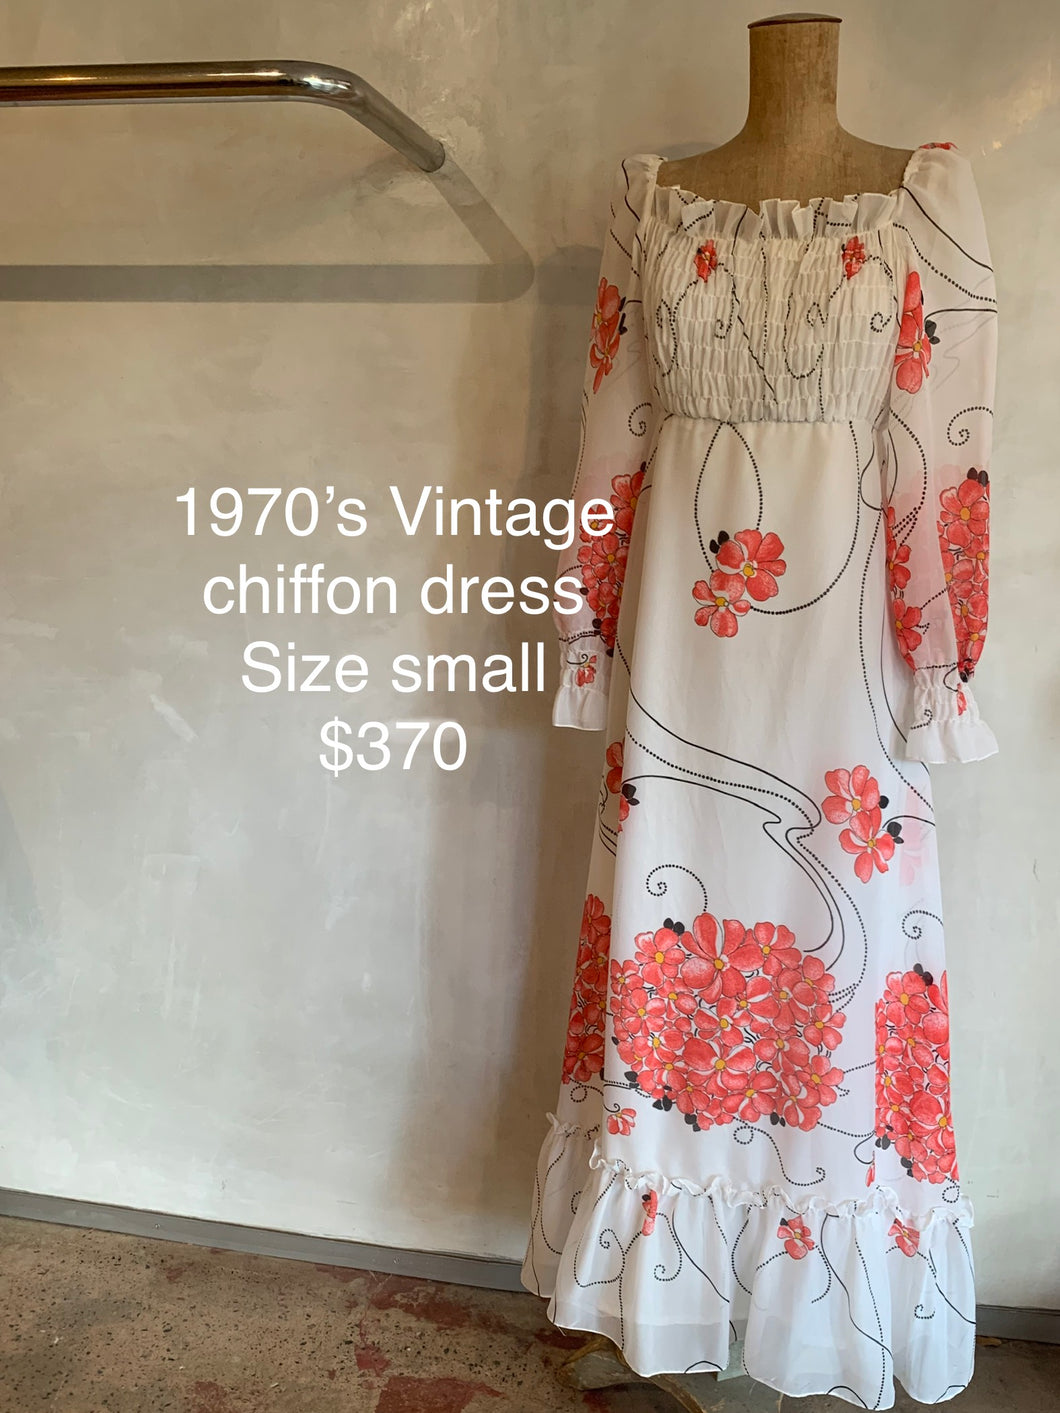 Vintage 1970's chiffon dress